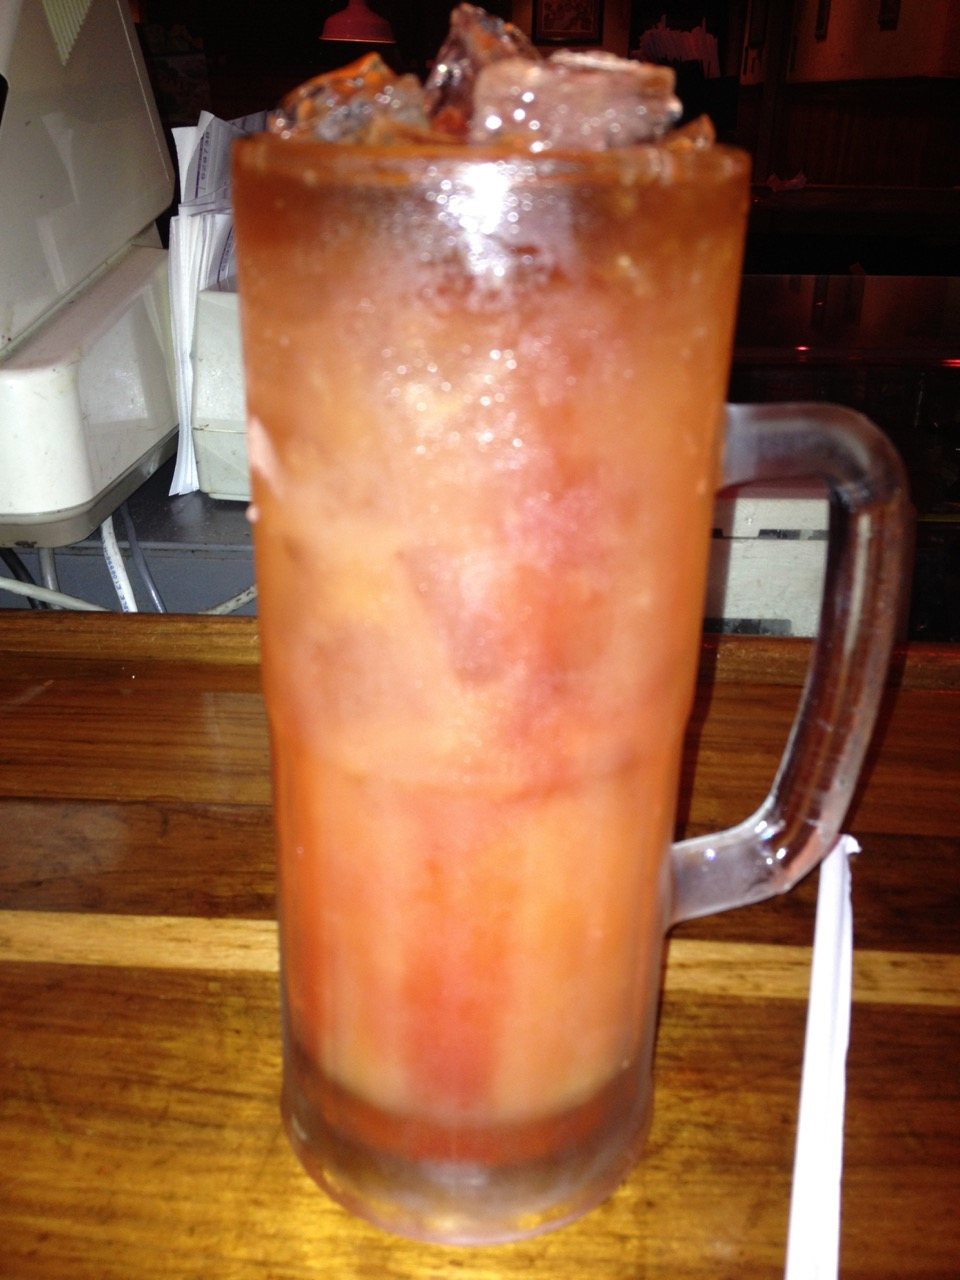 The 57 Chevy at Outback – July 21 2012